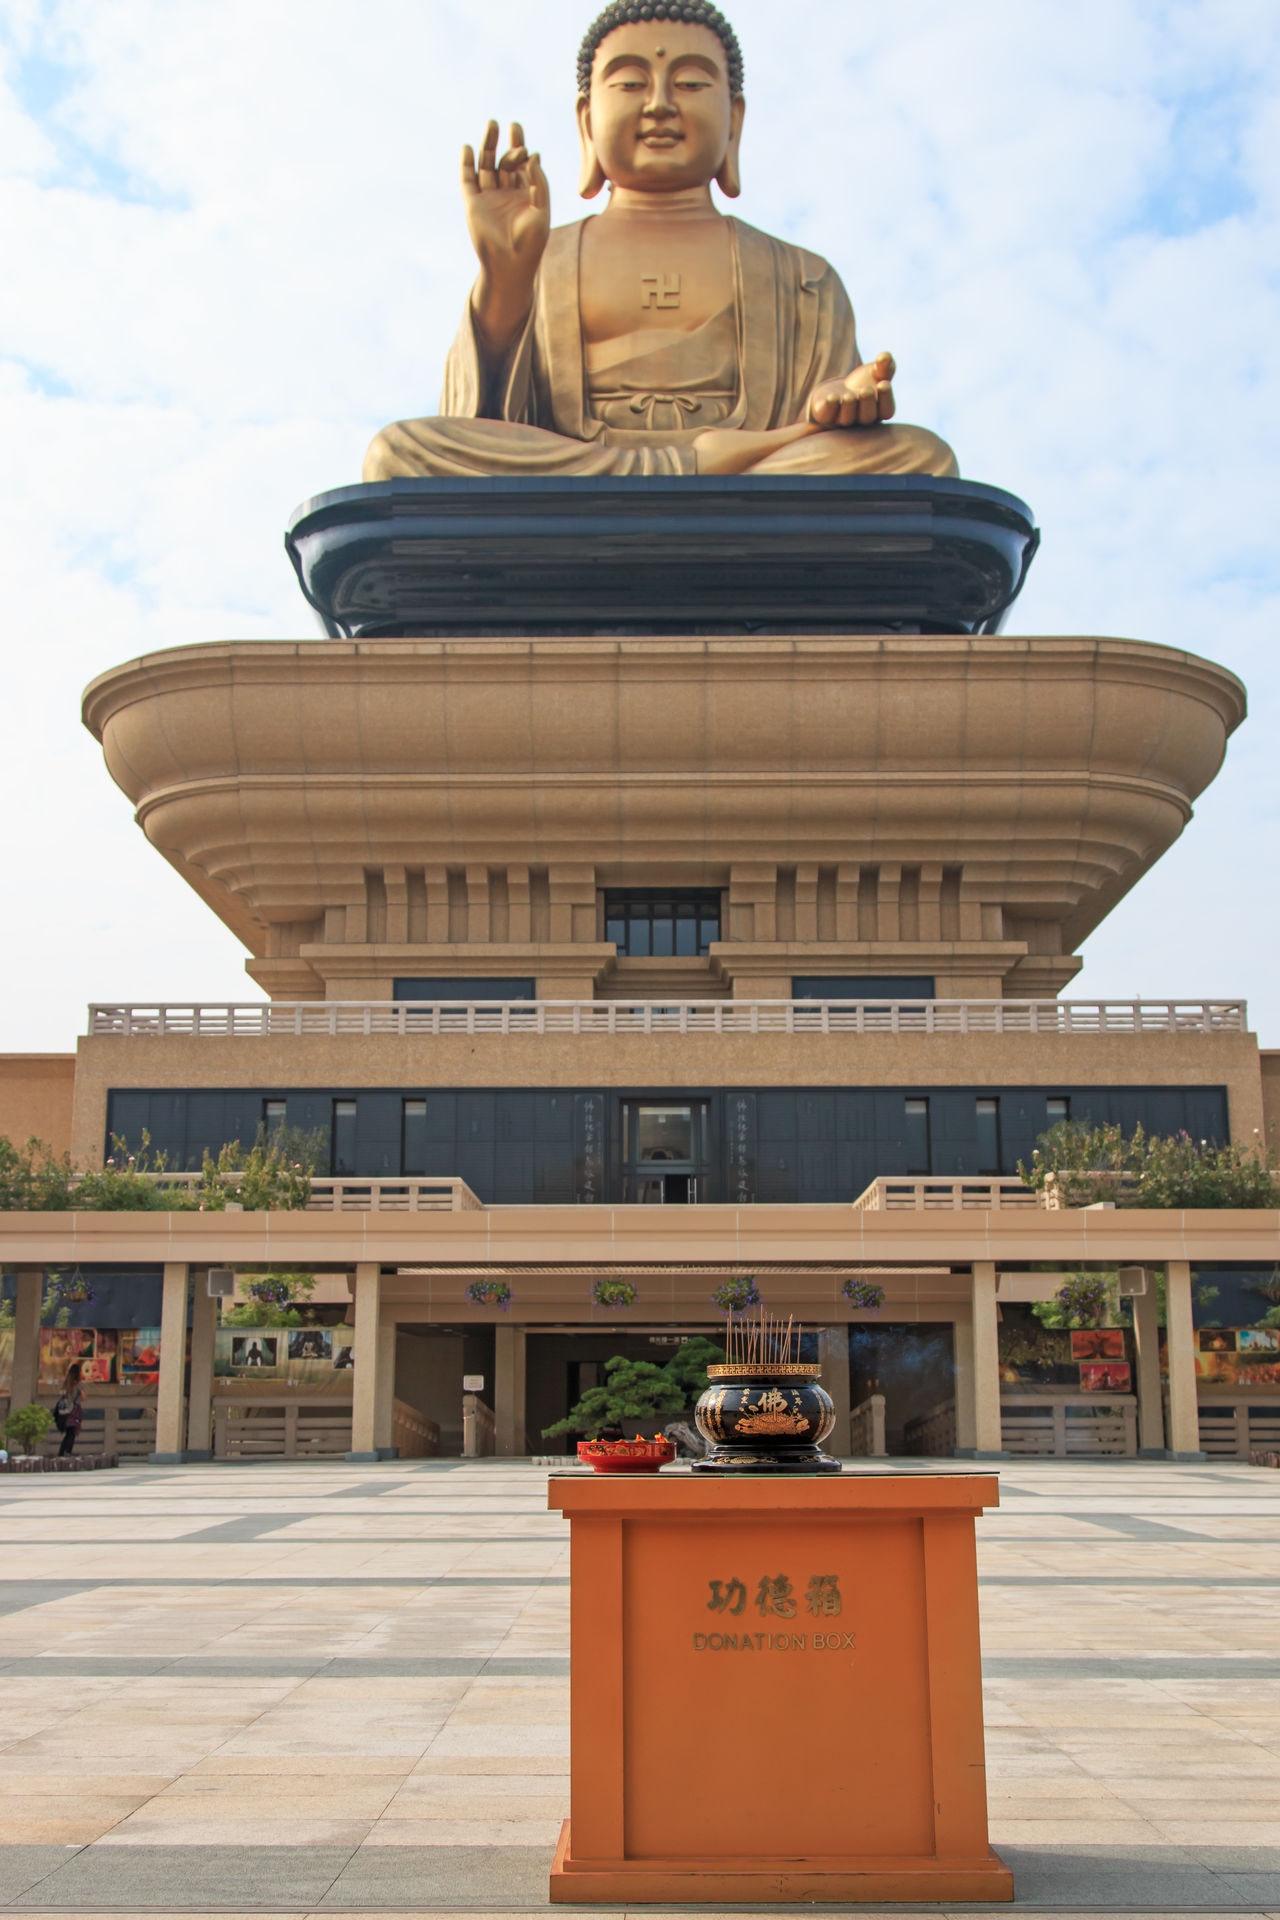 Kaohsiung, Taiwan - December 15,2014: Giant buddha and incense at the Fo Guang Shan of Taiwan, Kaohiung Architectural Column Architecture Art ASIA Asian Culture Buddhist Built Structure China City Cloud Cloud - Sky Creativity Culture Day Fo Guang Shan Kaohsiung Low Angle View Orient Outdoors Sculpture Sky Statue Taiwan Tourism Travel Destinations